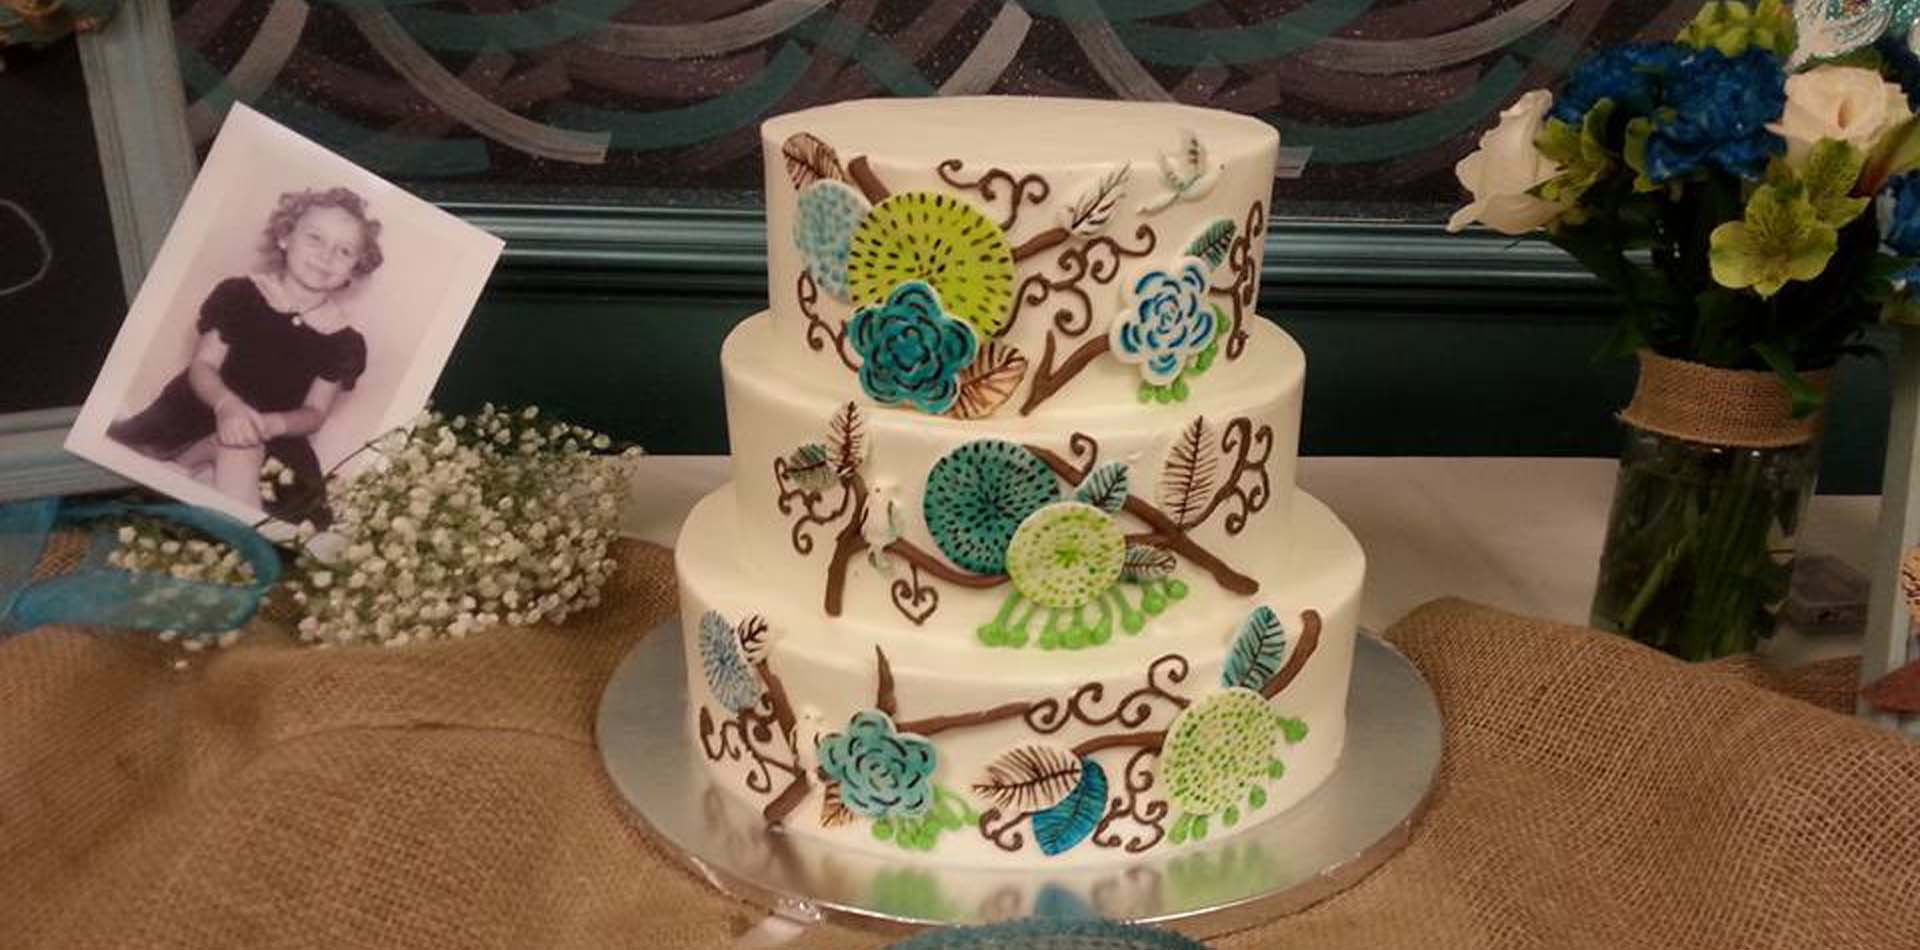 Oh Goodness Cakes Cakes For Wedding Birthday Special Occasion